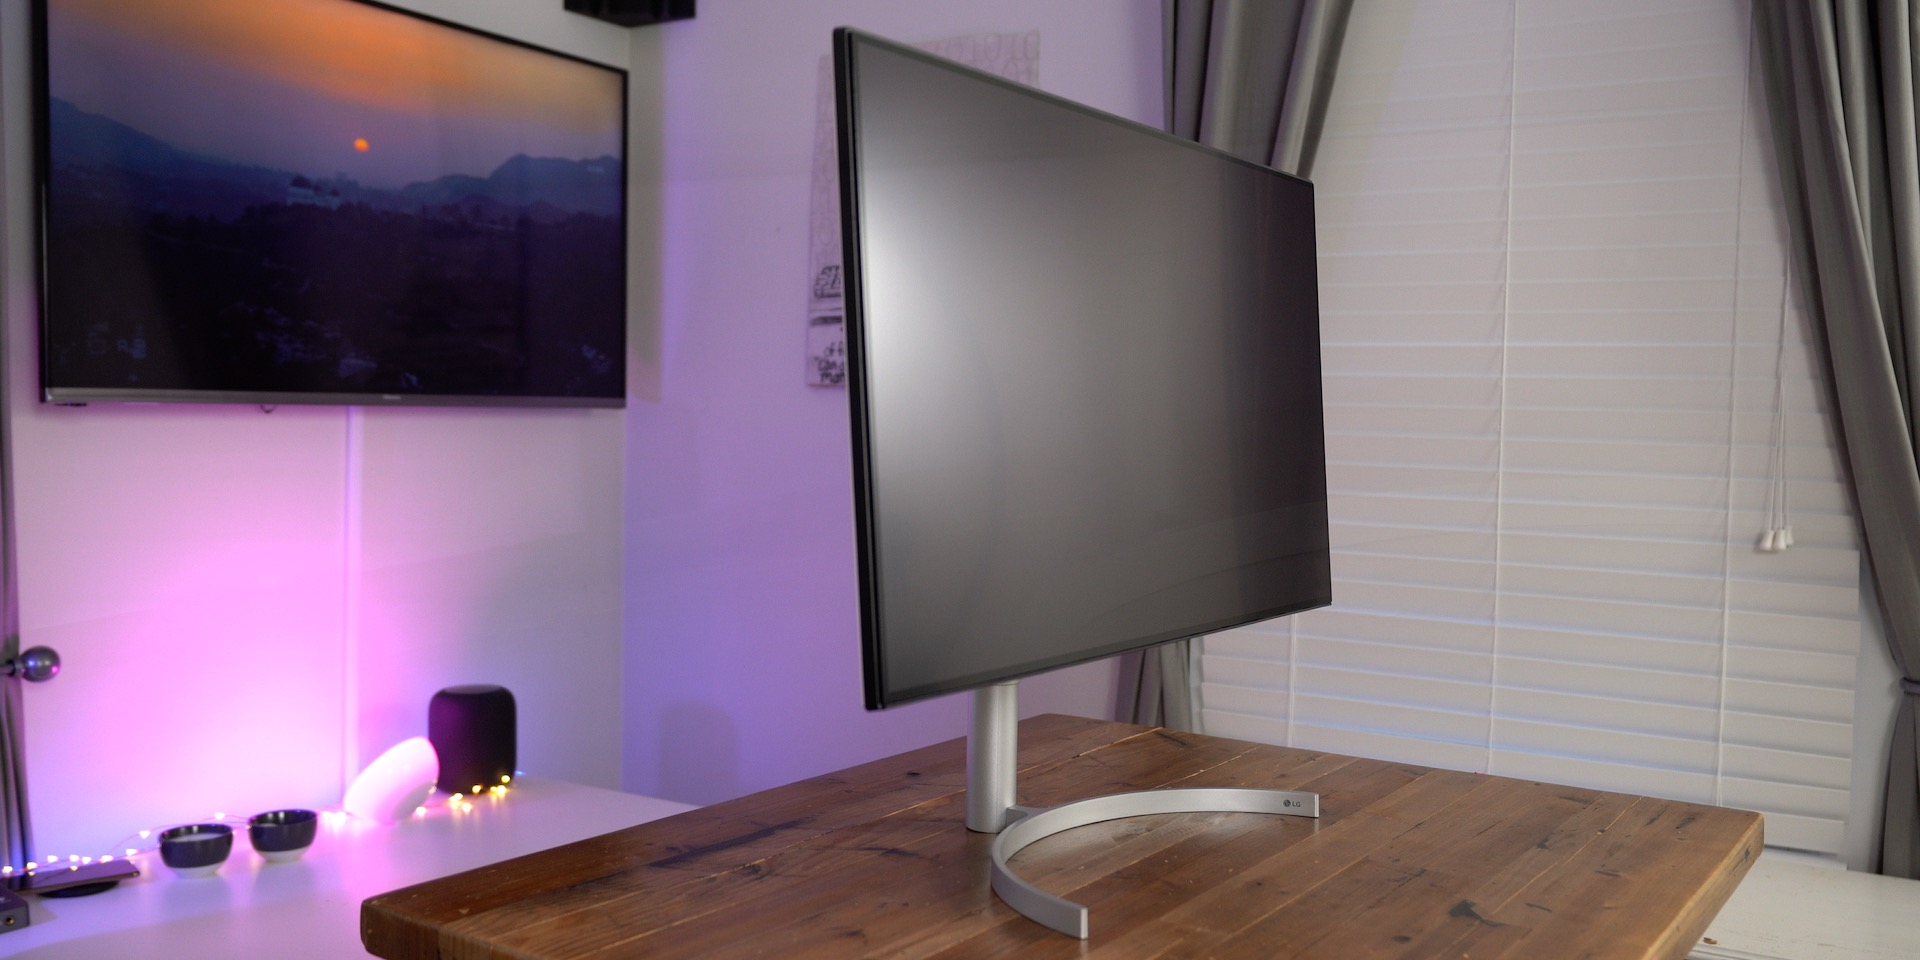 LG 32UL950 UltraFine 4K Display Review Table Top